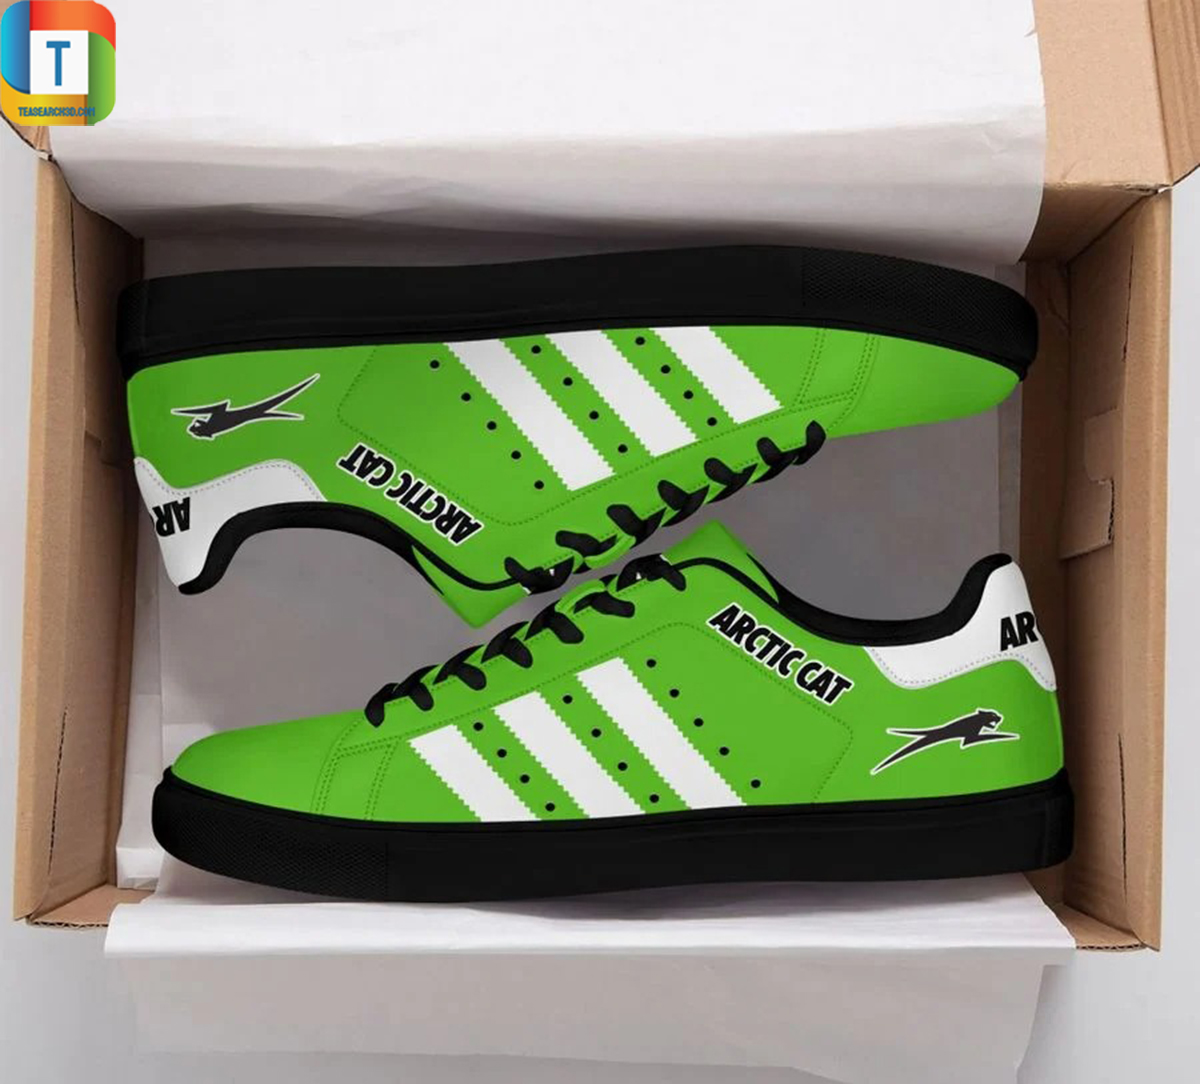 Arctic cat stan smith low top shoes 3